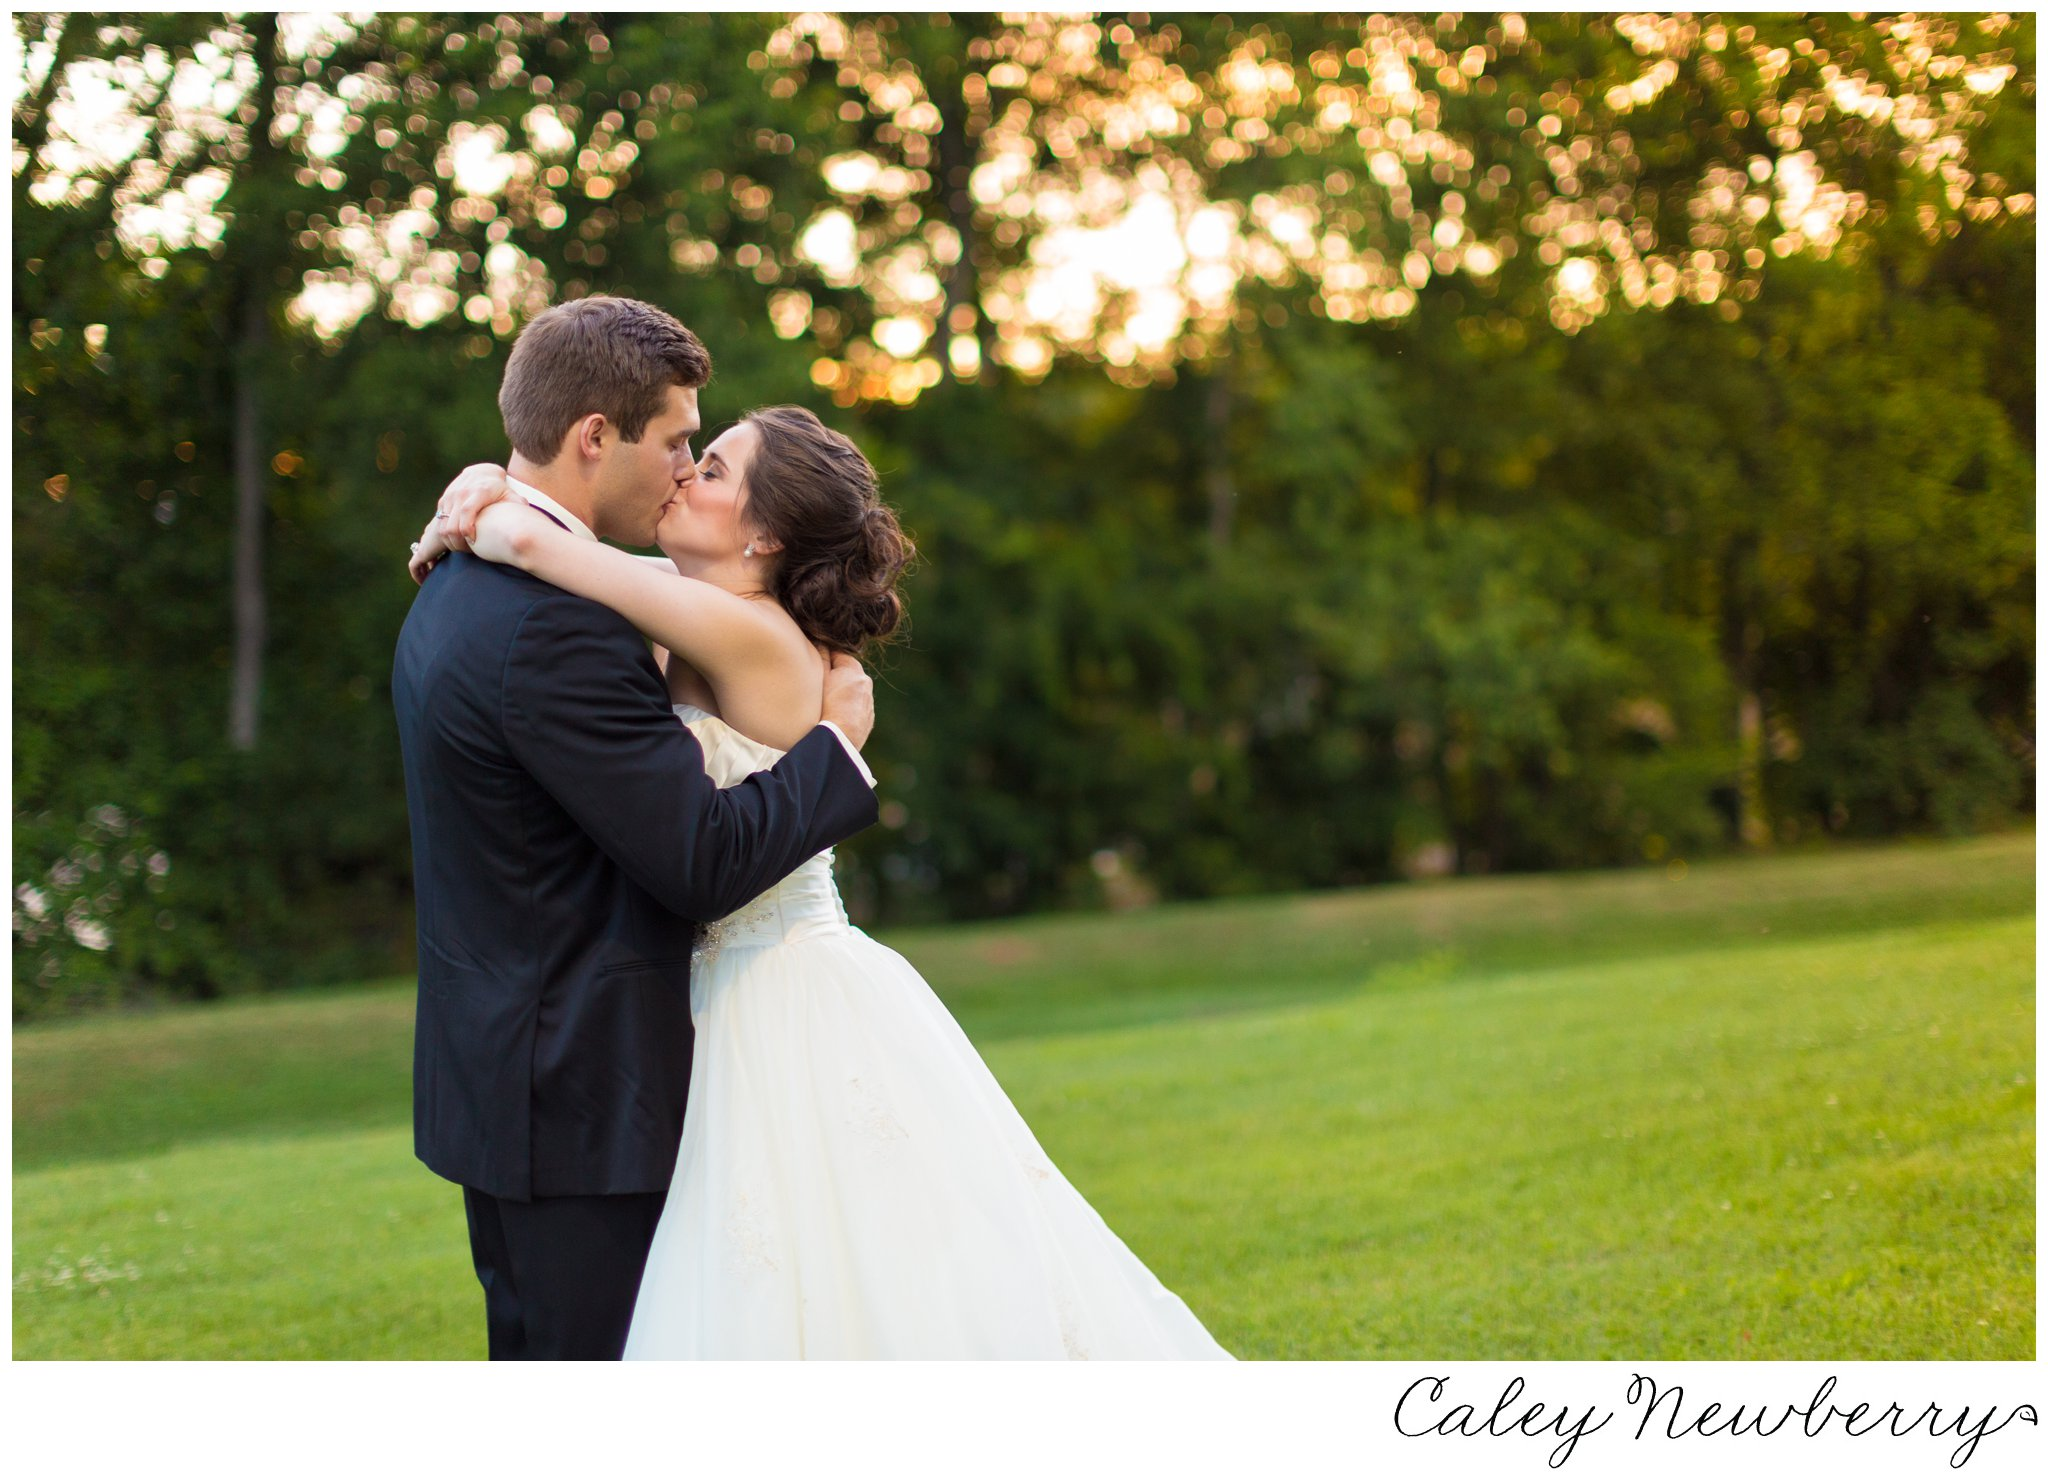 nashville-wedding-photography-caley-newberry.jpg